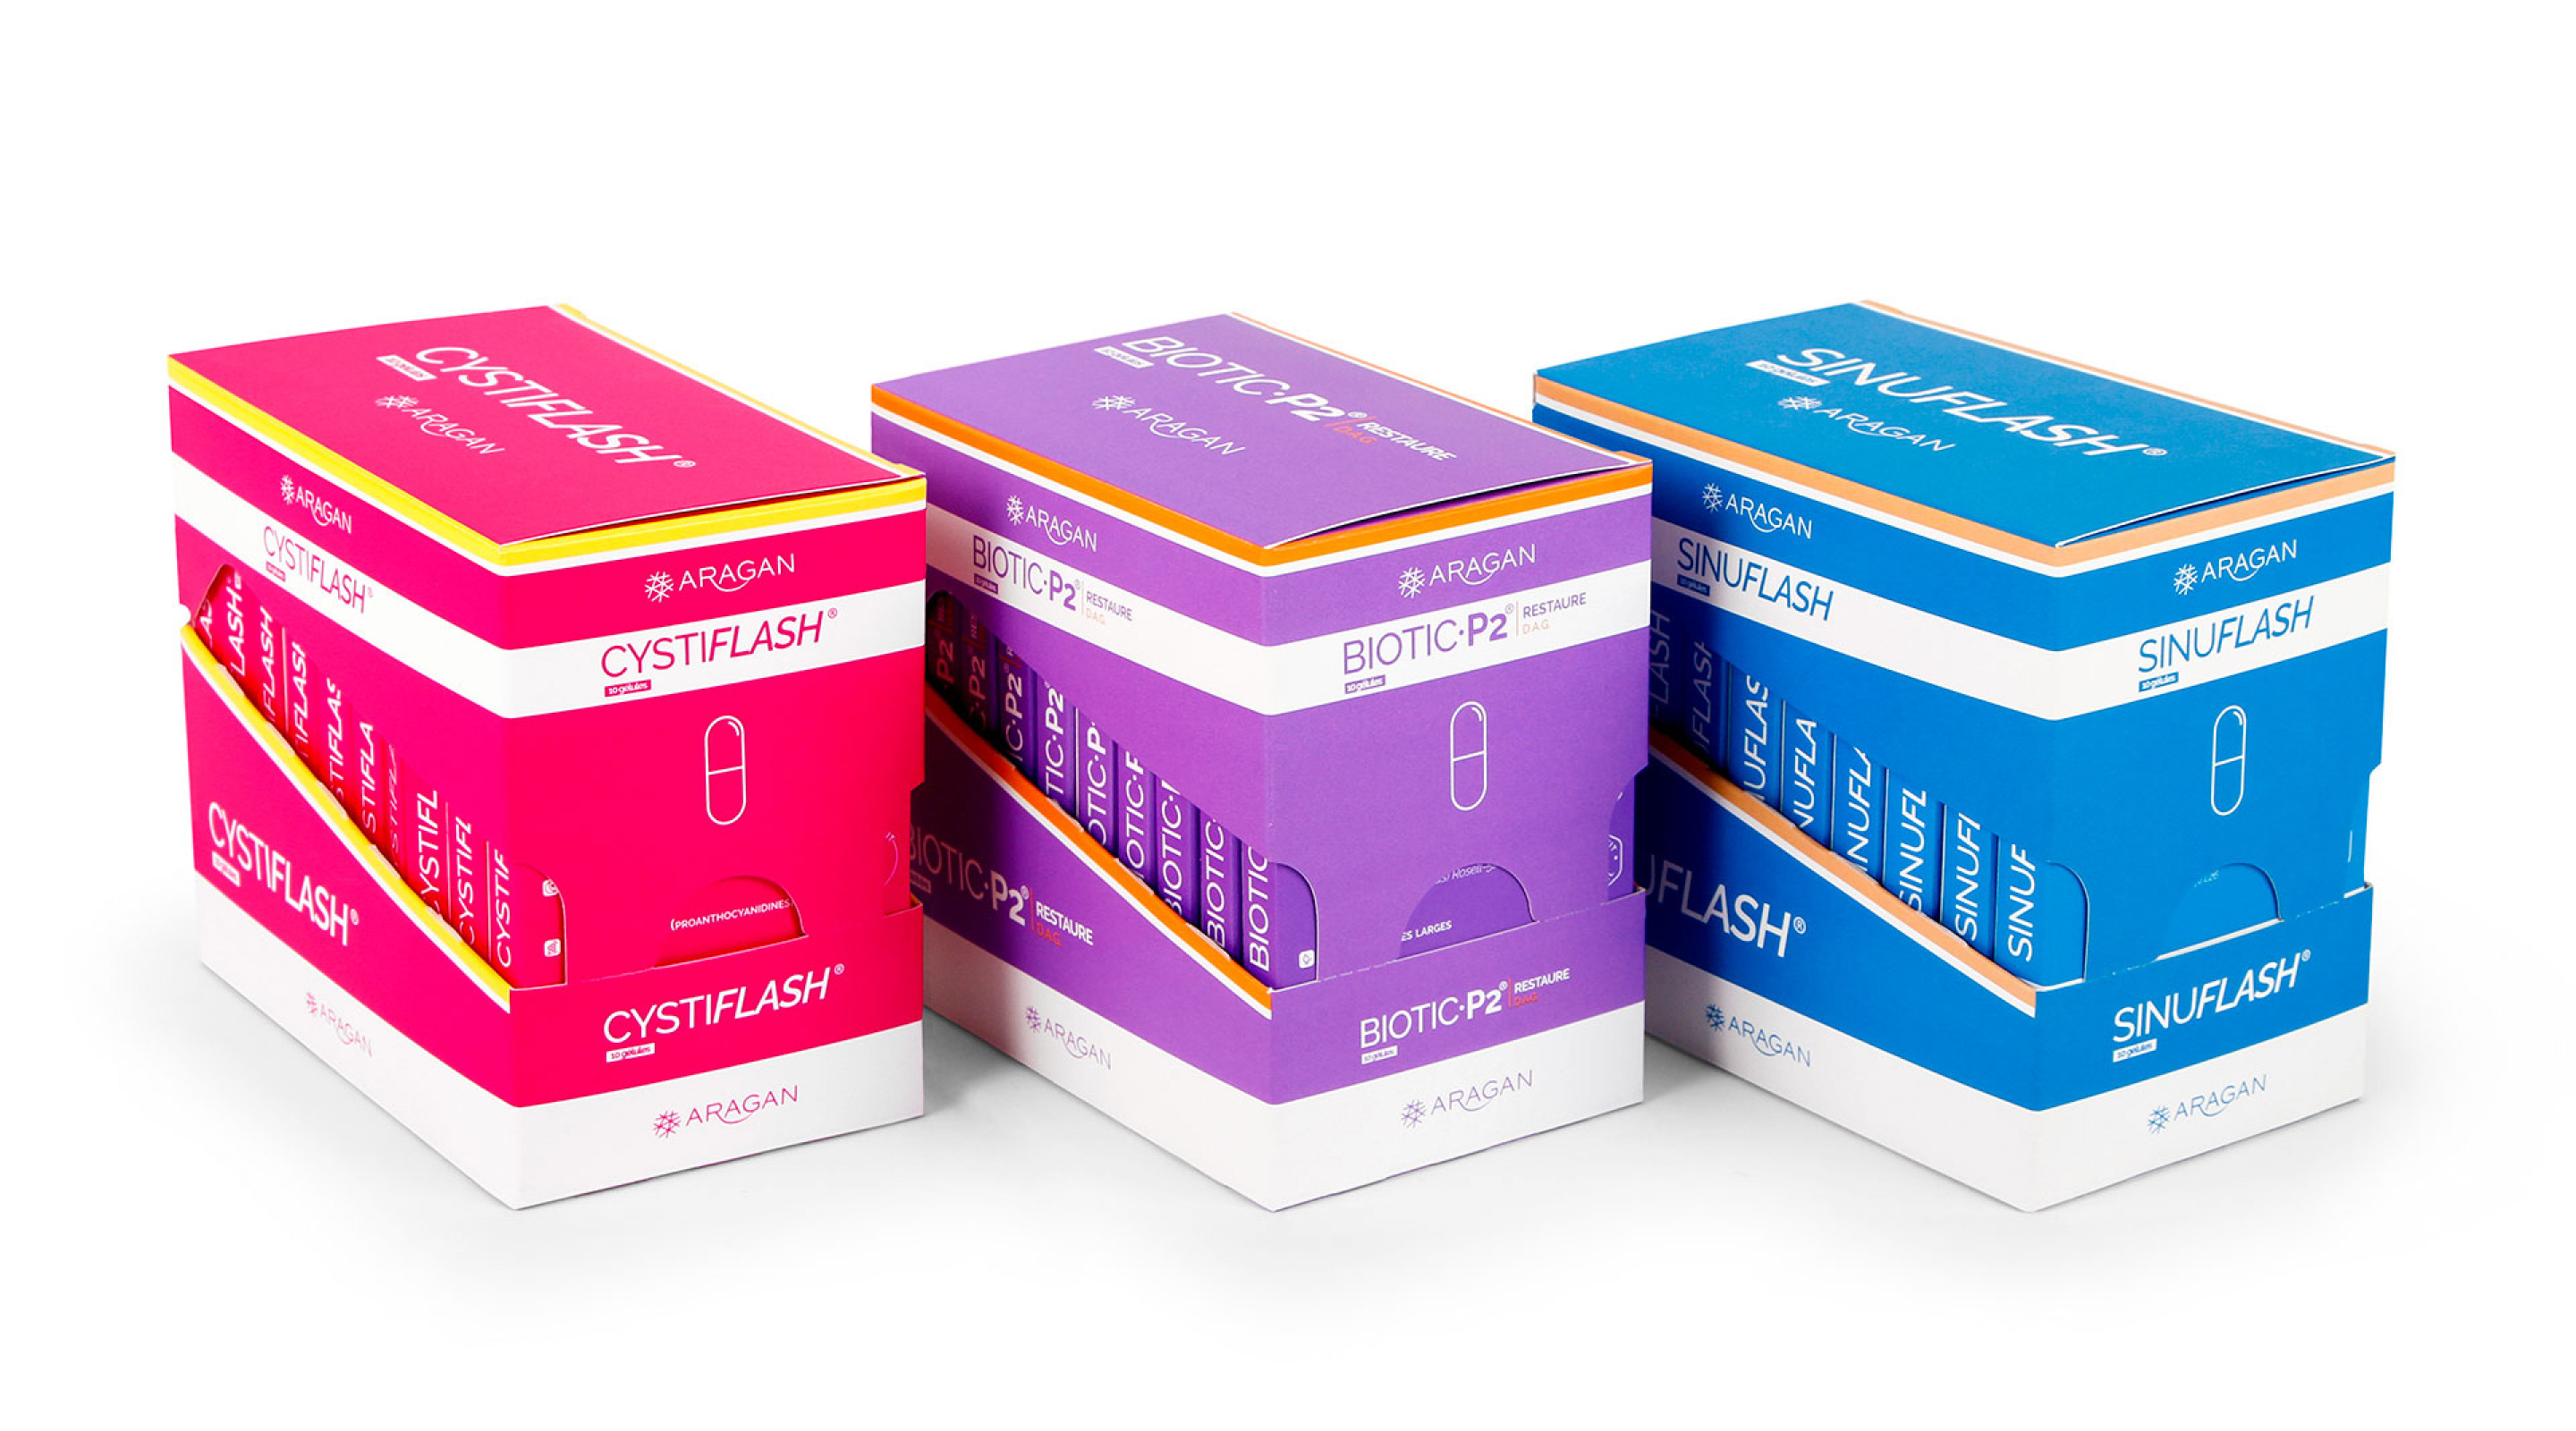 Point of Sale Packaging for Aragan Supplement Blister Packaging